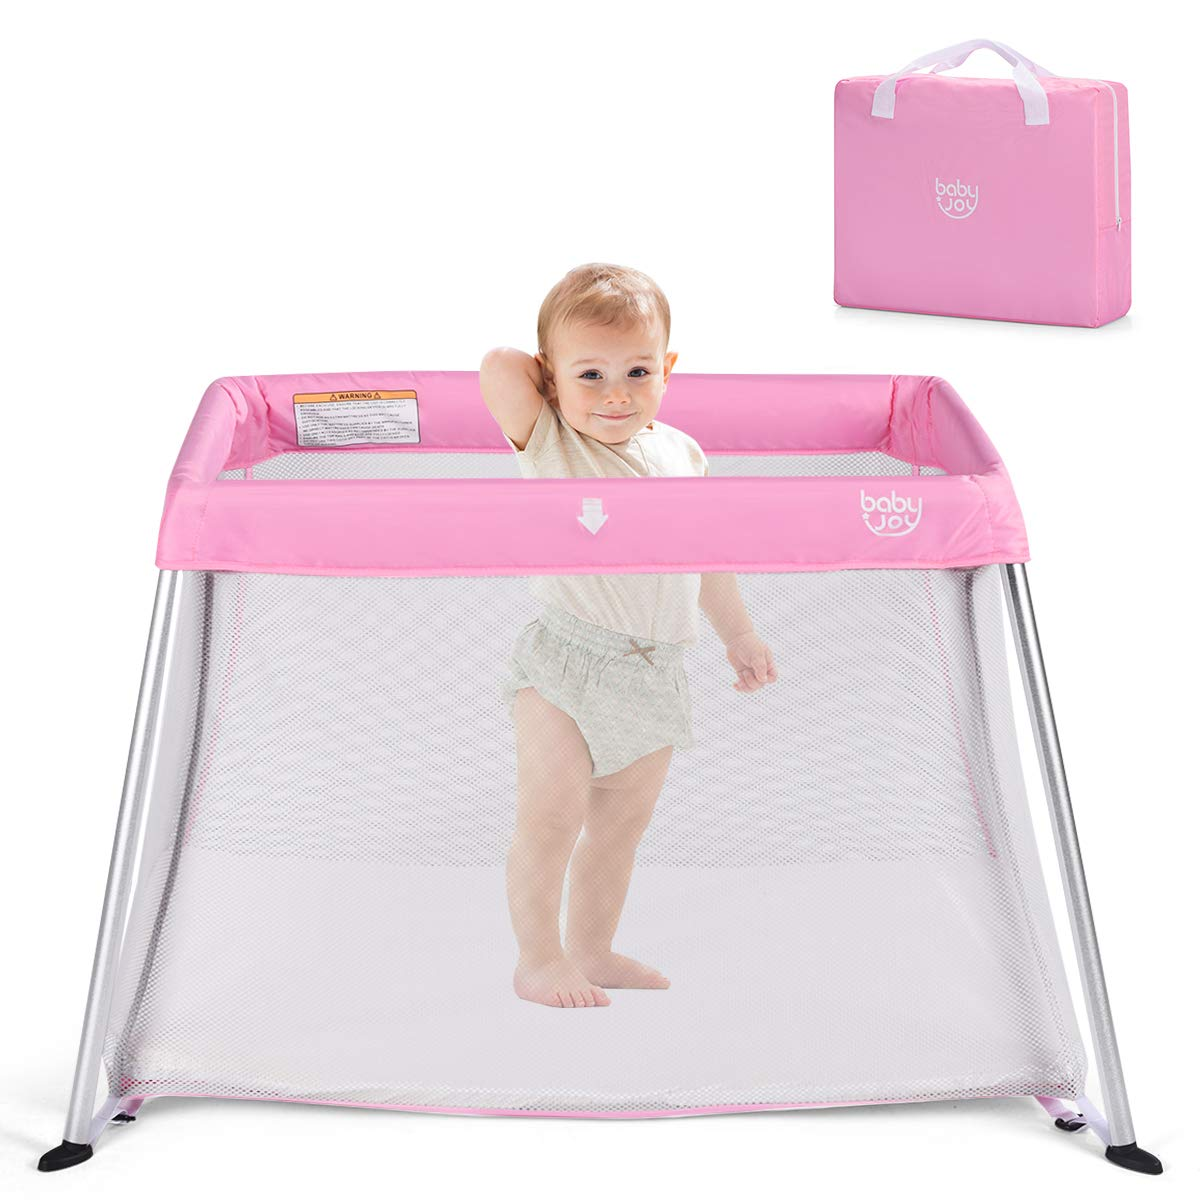 BABY JOY Baby Foldable Travel Crib, 2 in 1 Portable Playpen with Soft Washable Mattress, Easy to Pack and Install with Comfortable Mattress and Oxford Carry Bag for Infant Toddler Newborn, Pink